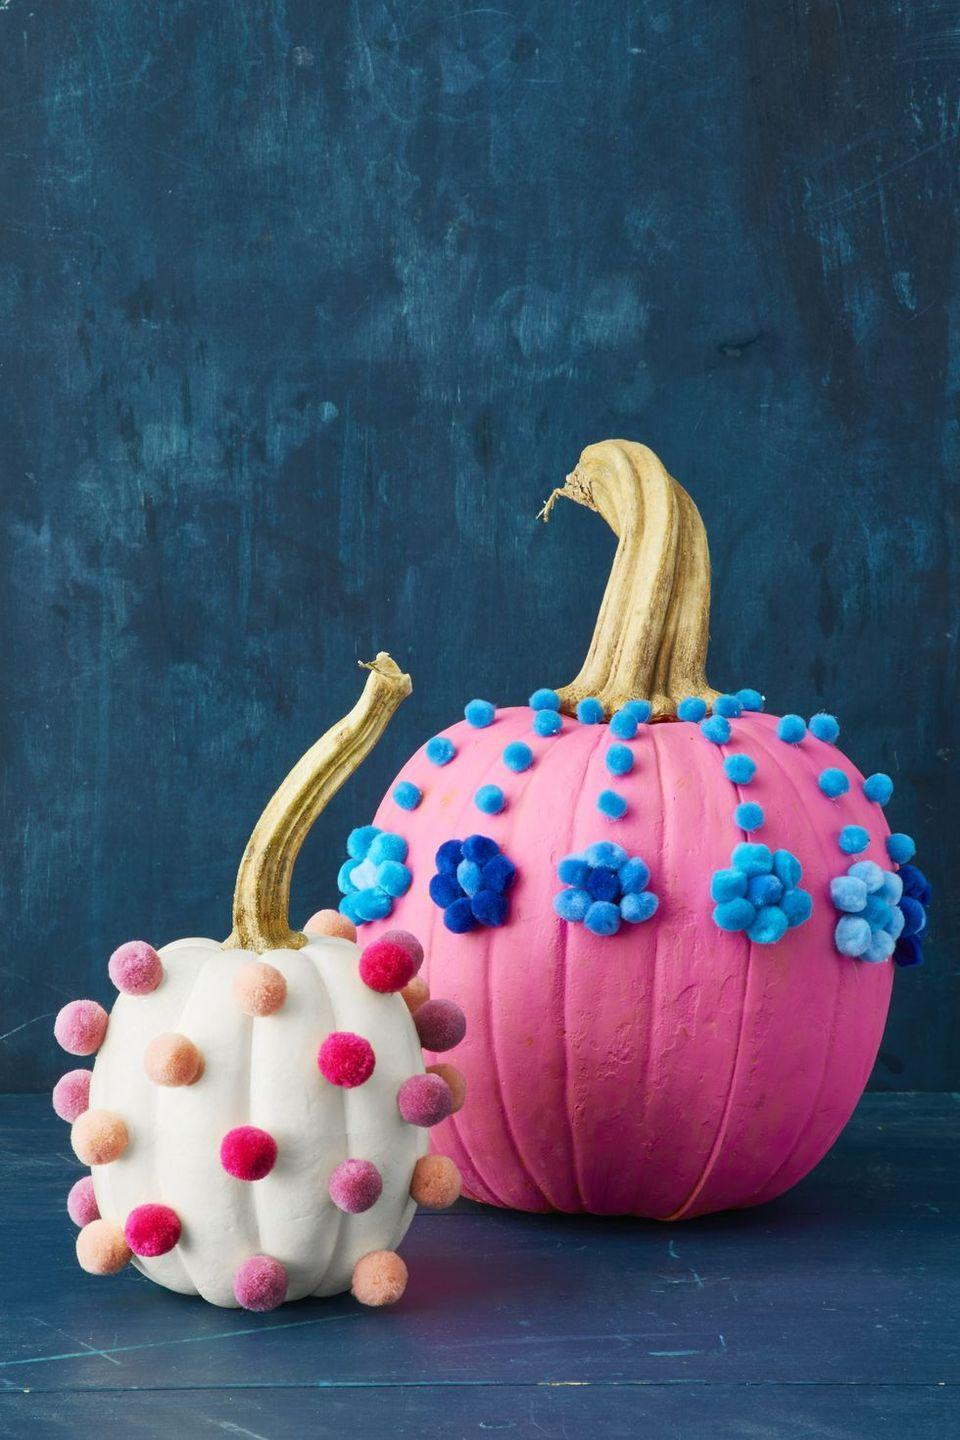 "<p>With some supervision, kids can add pops of fuzzy color to painted pumpkins. Once they sort through an array of sizes and colors, attach pom poms in rows or clusters with hot glue (that's your job).</p><p><a class=""link rapid-noclick-resp"" href=""https://www.amazon.com/Acerich-Assorted-Multicolor-Creative-Decorations/dp/B0773MQY4H/?tag=syn-yahoo-20&ascsubtag=%5Bartid%7C10055.g.22062770%5Bsrc%7Cyahoo-us"" rel=""nofollow noopener"" target=""_blank"" data-ylk=""slk:SHOP POM POMS"">SHOP POM POMS</a> </p>"